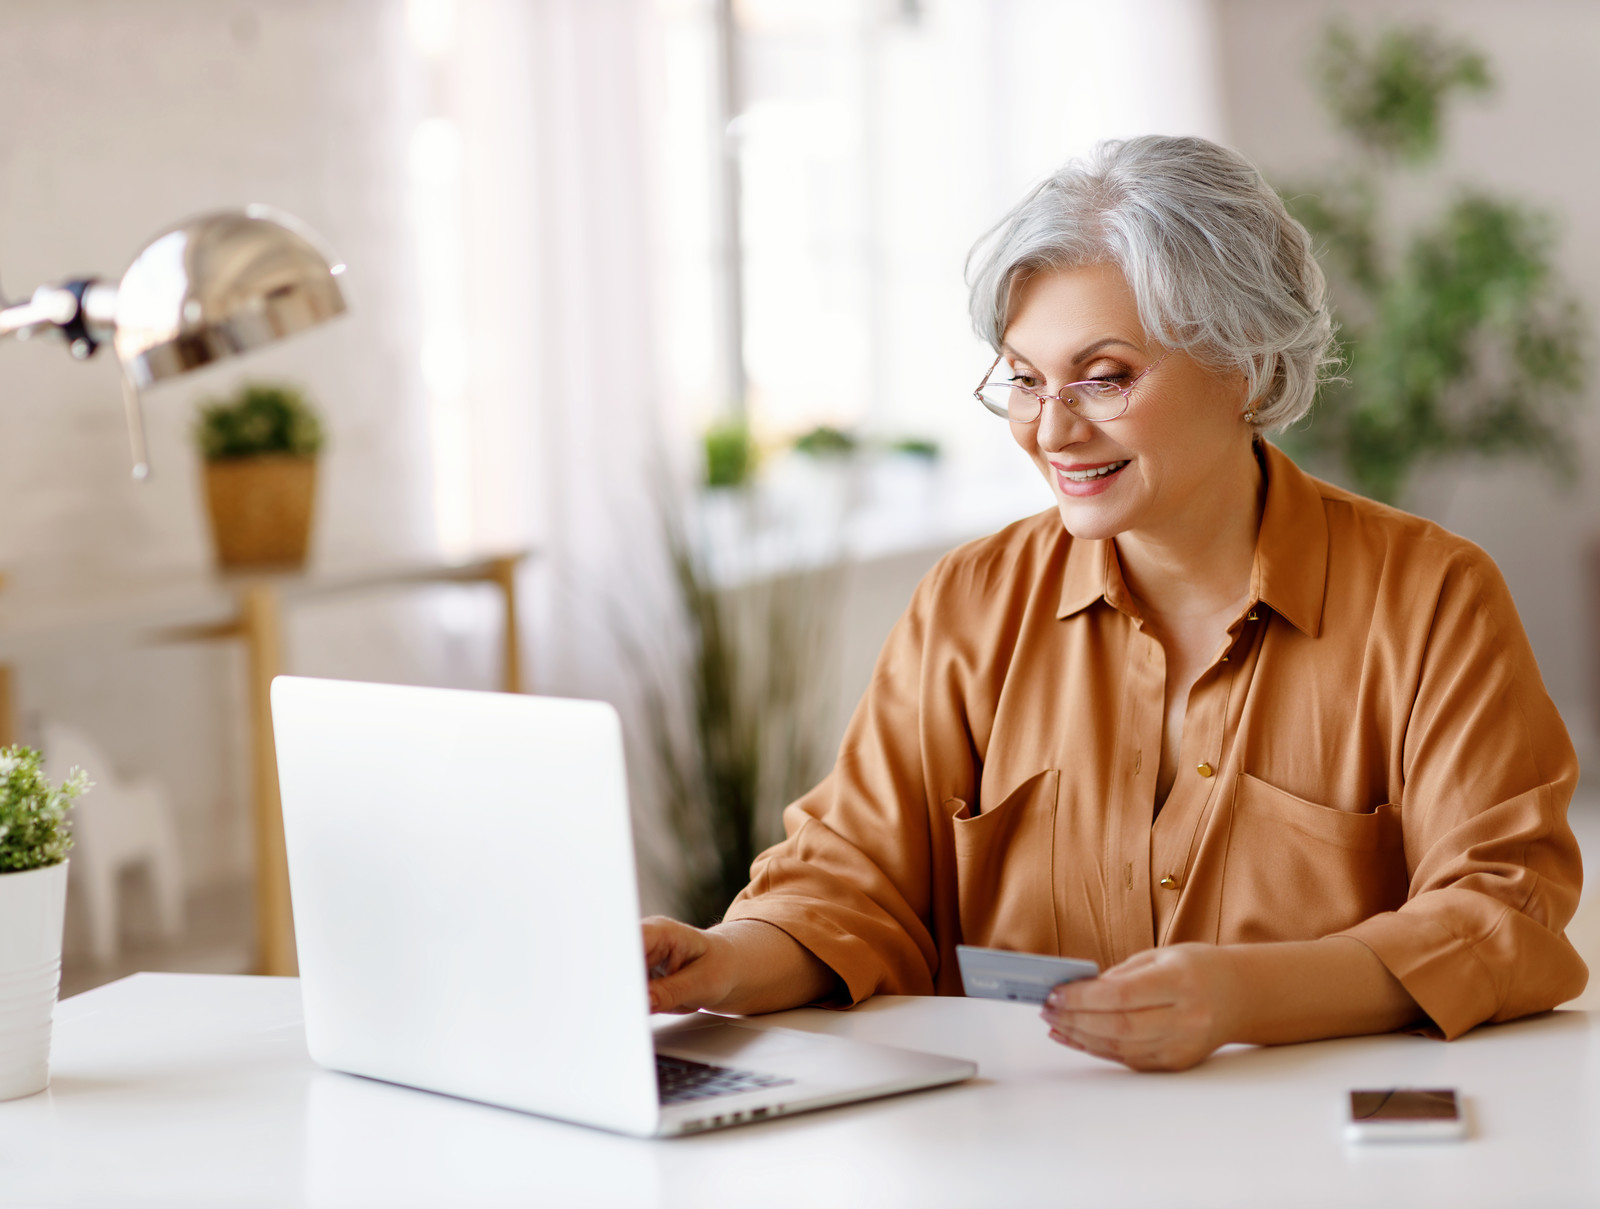 Smiling senior woman making a online payment on her laptop at home